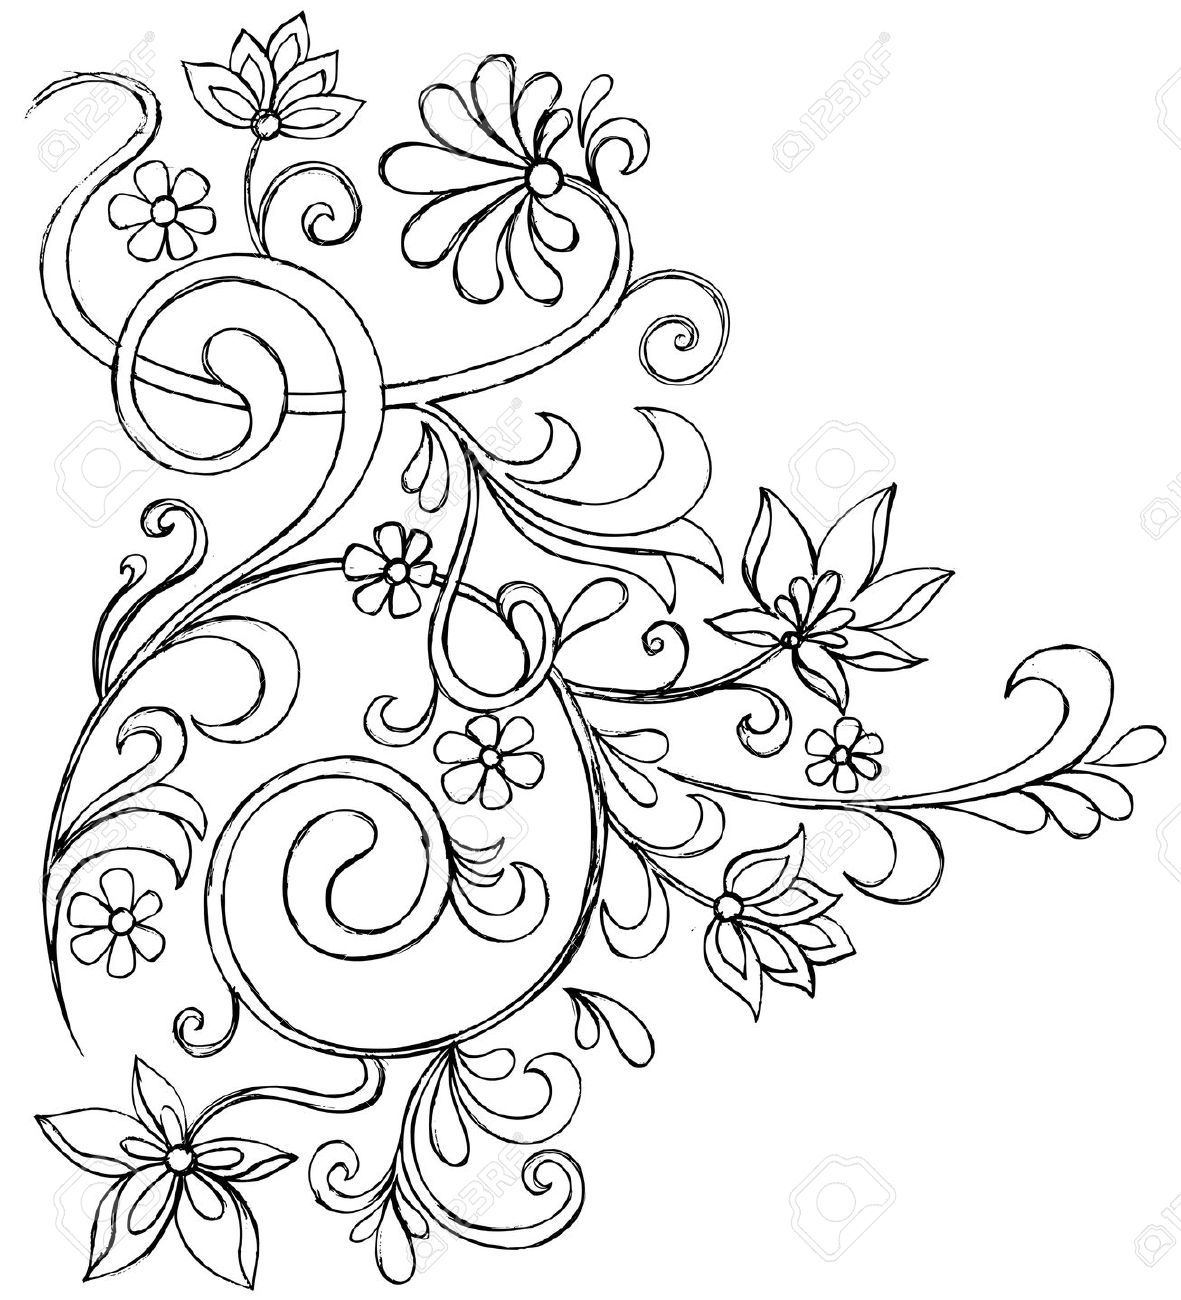 Line Art Vines : Sketchy doodle vines and flowers scroll vector drawing